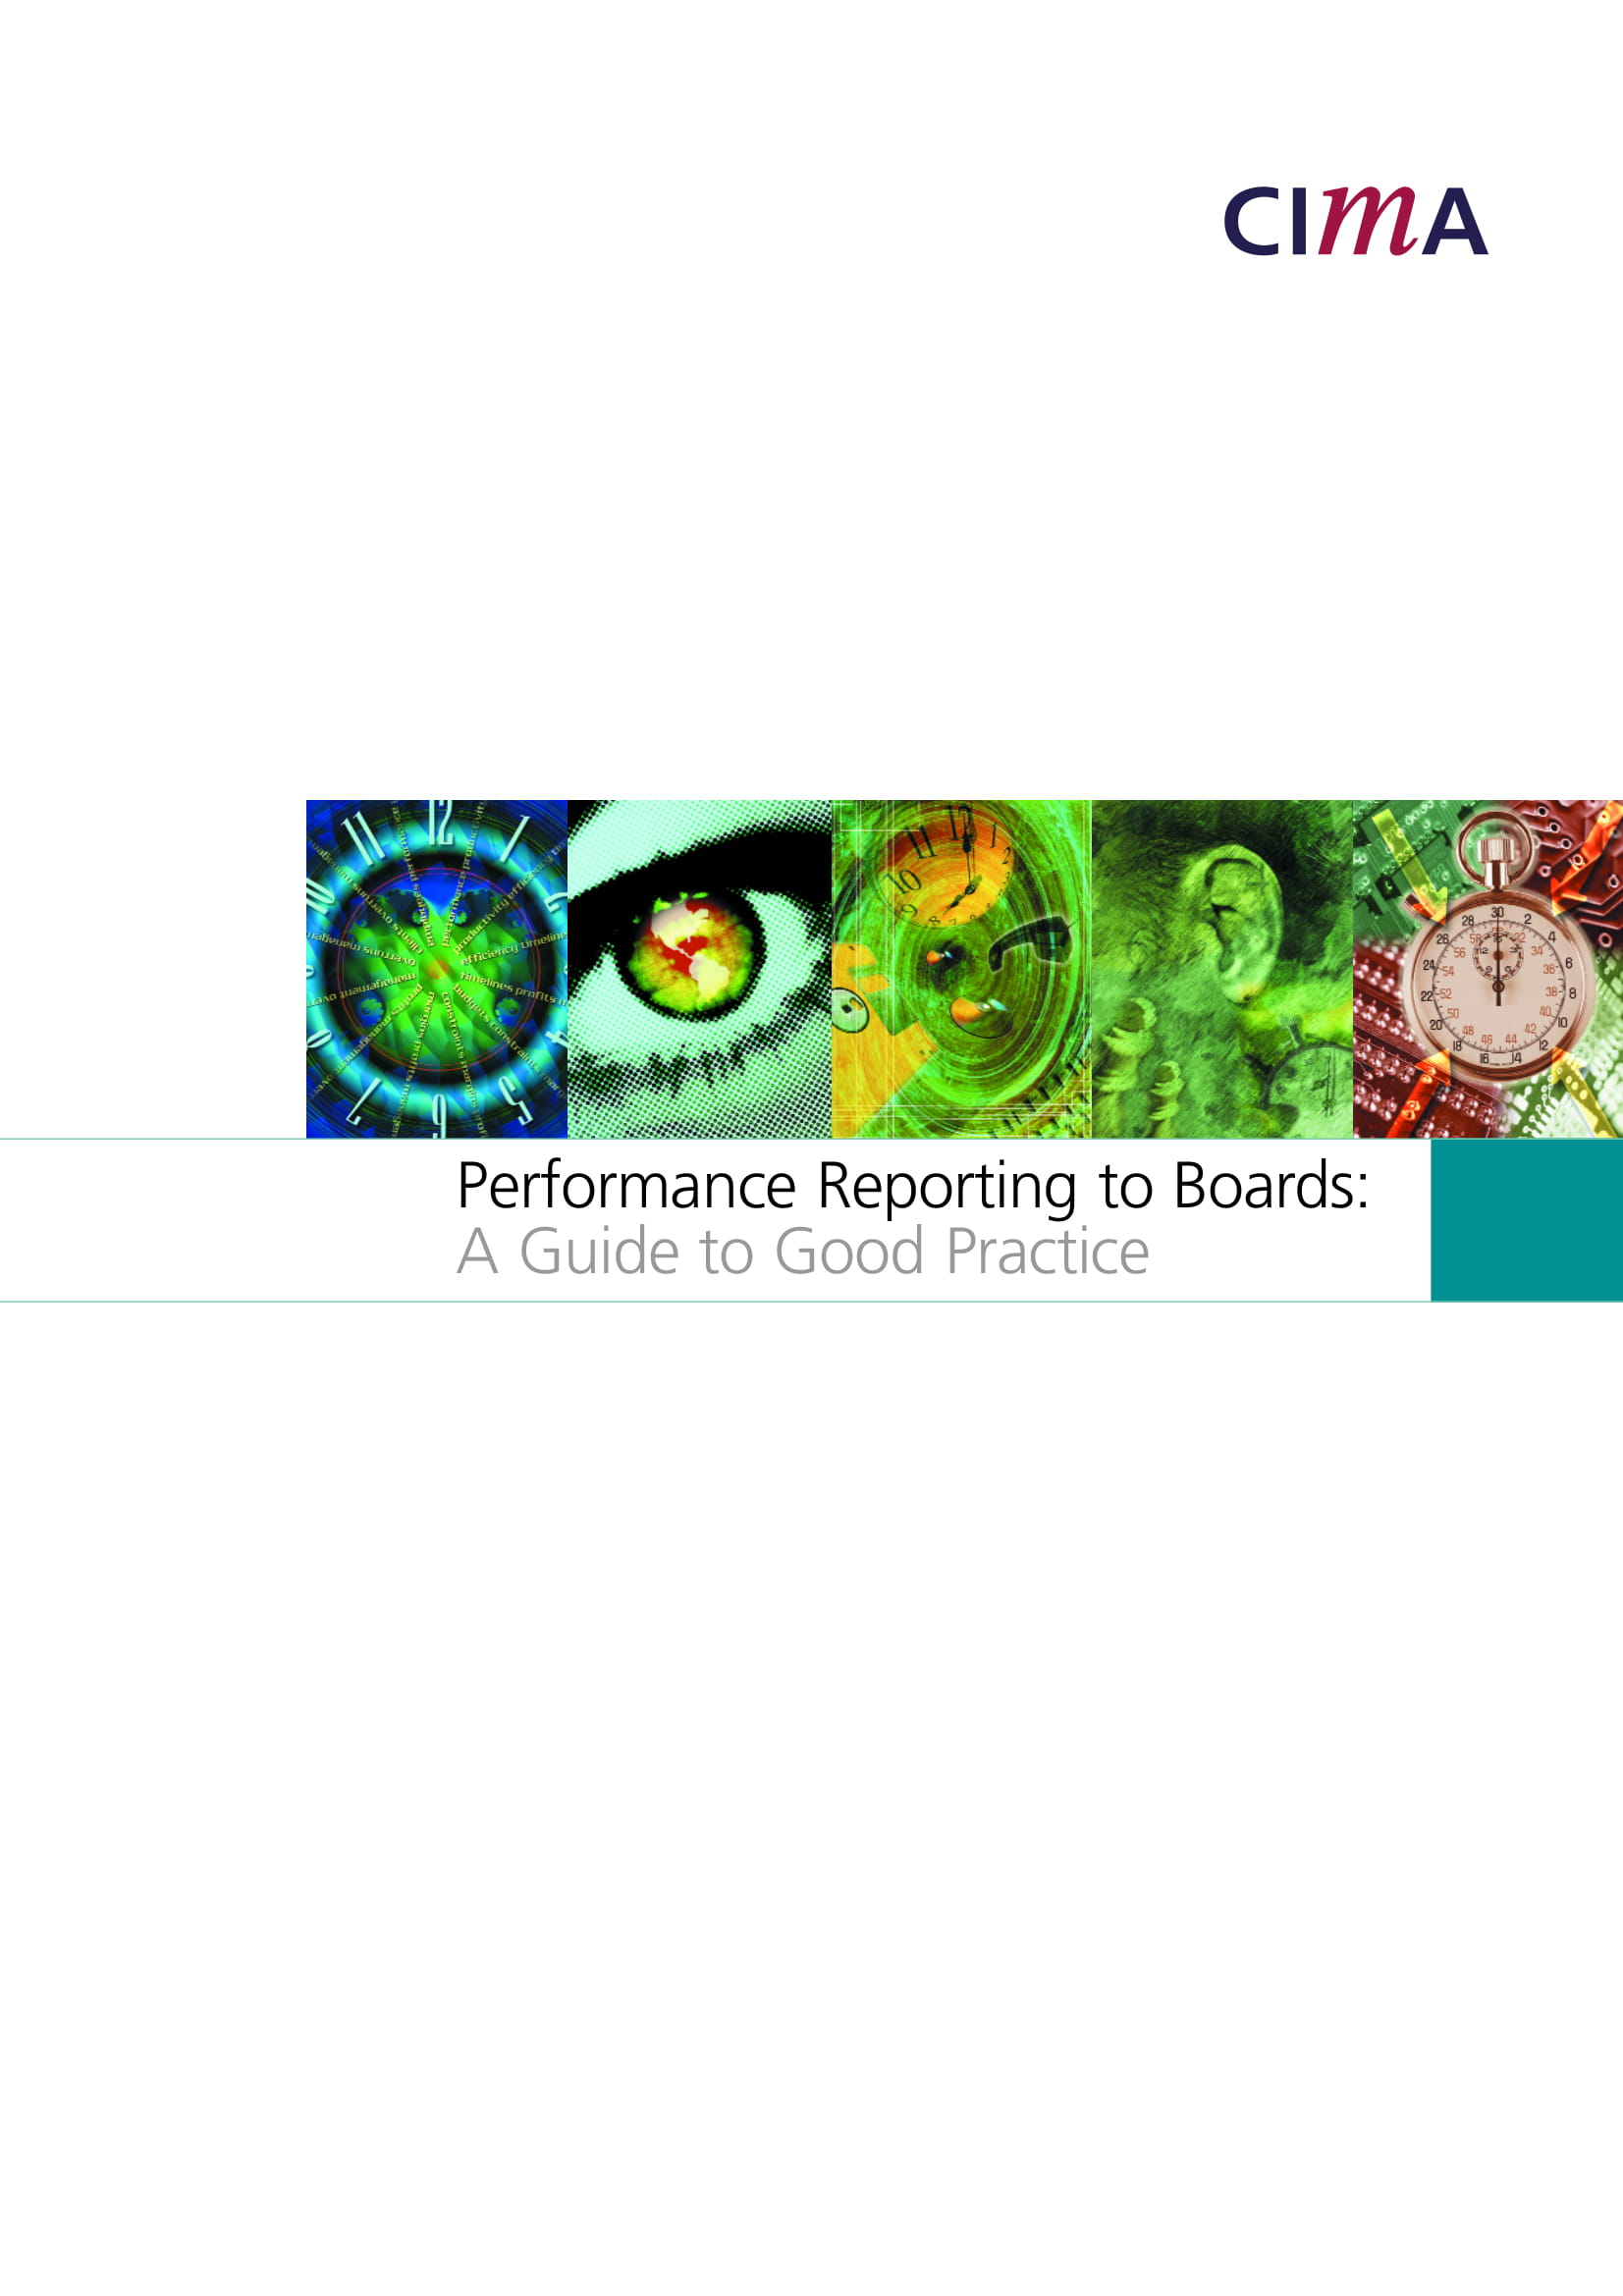 performance analysis report to boards example 01